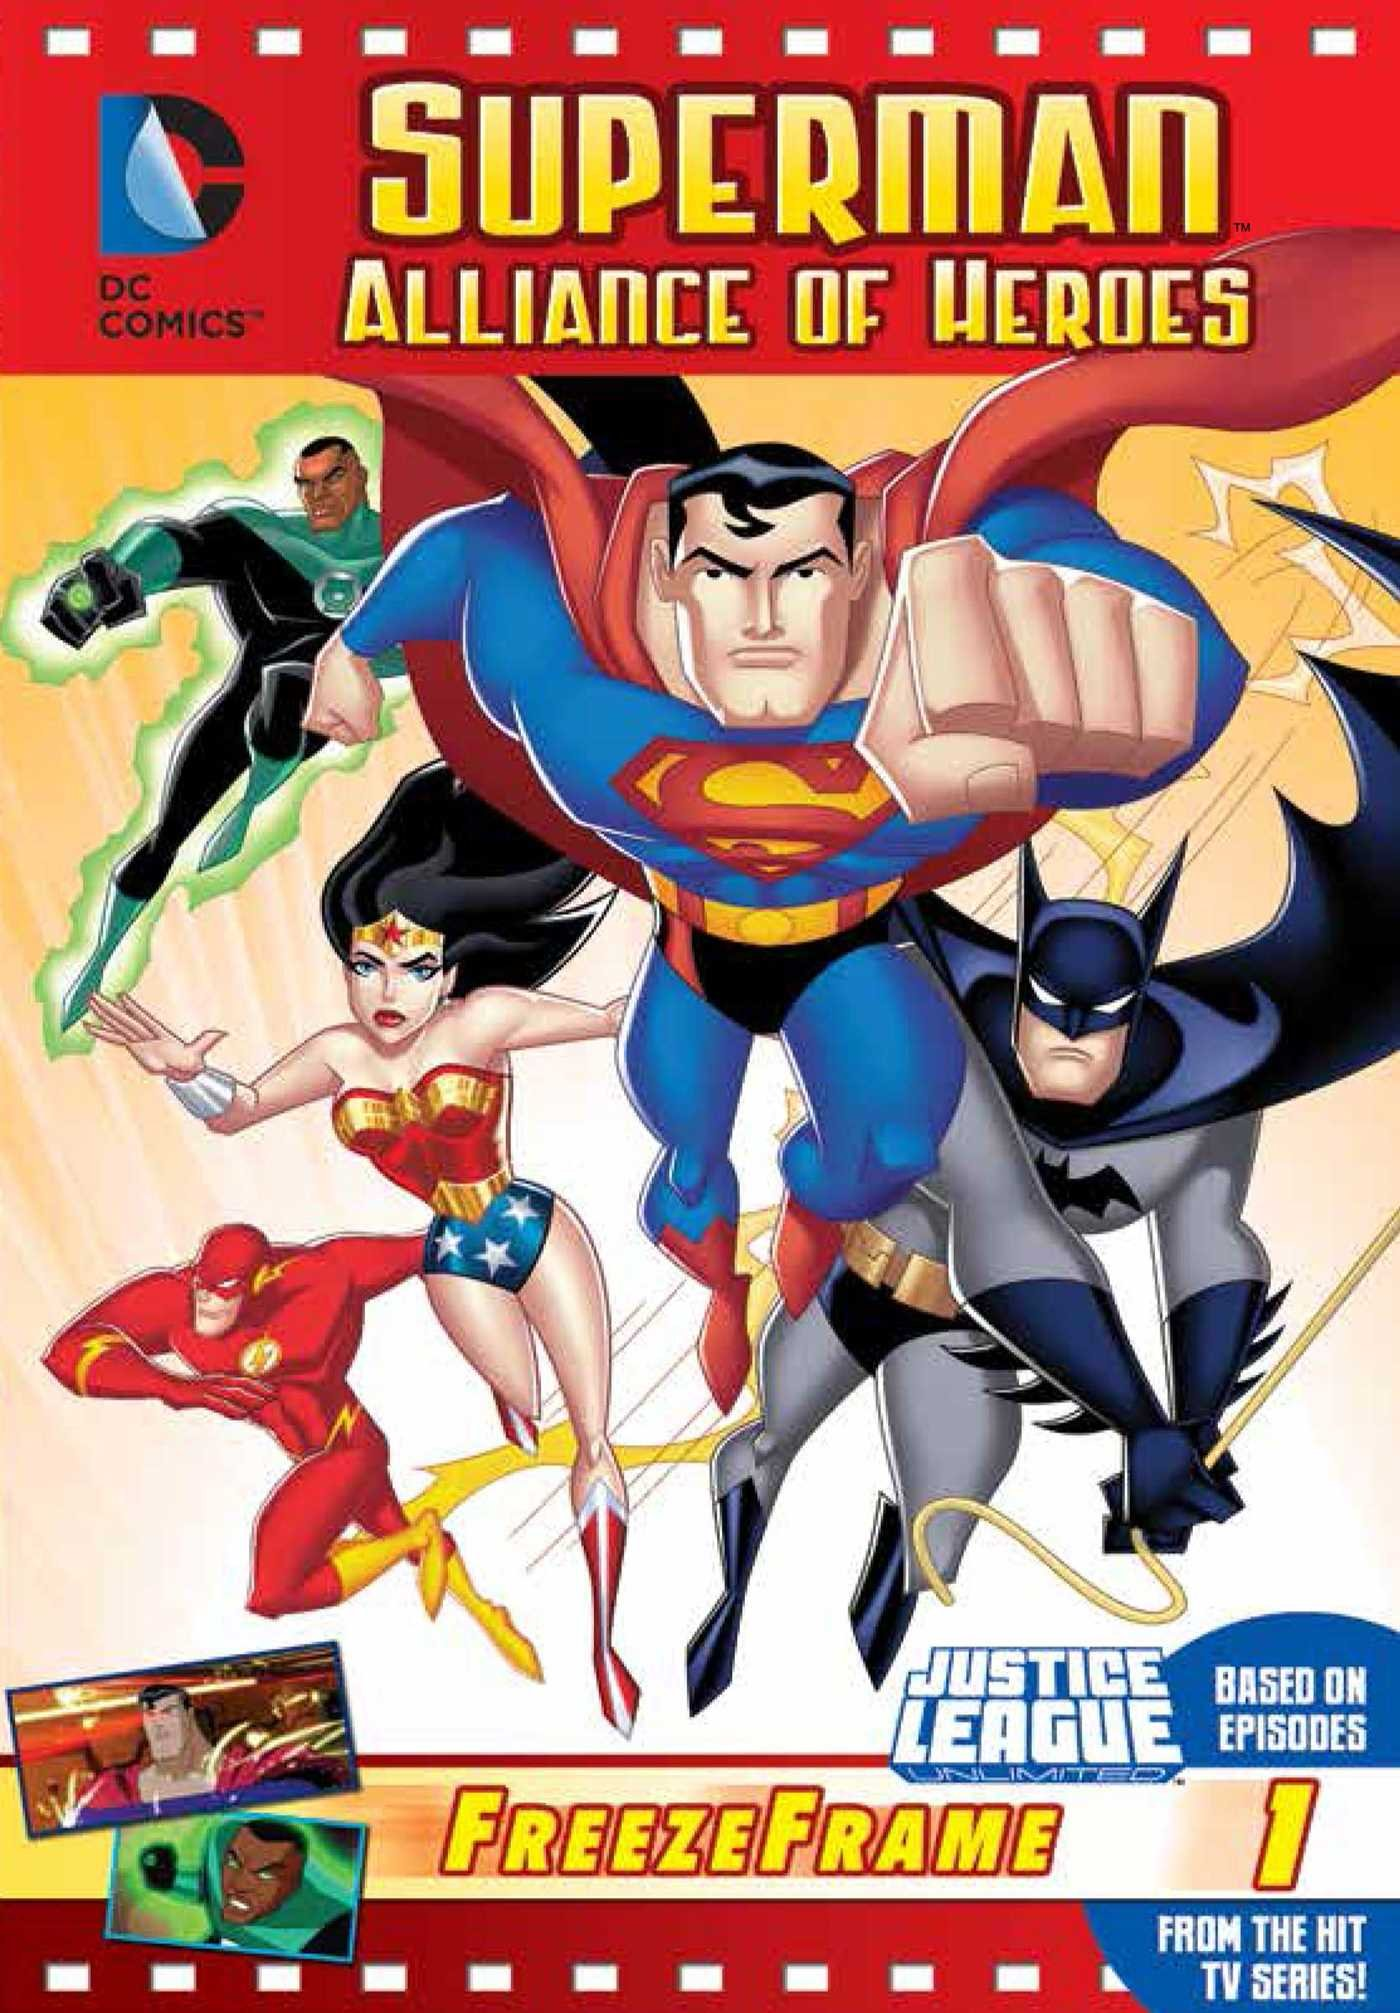 DC Justice League: Superman Alliance of Heroes: Justice League Unlimited Freeze Frame 1 PDF